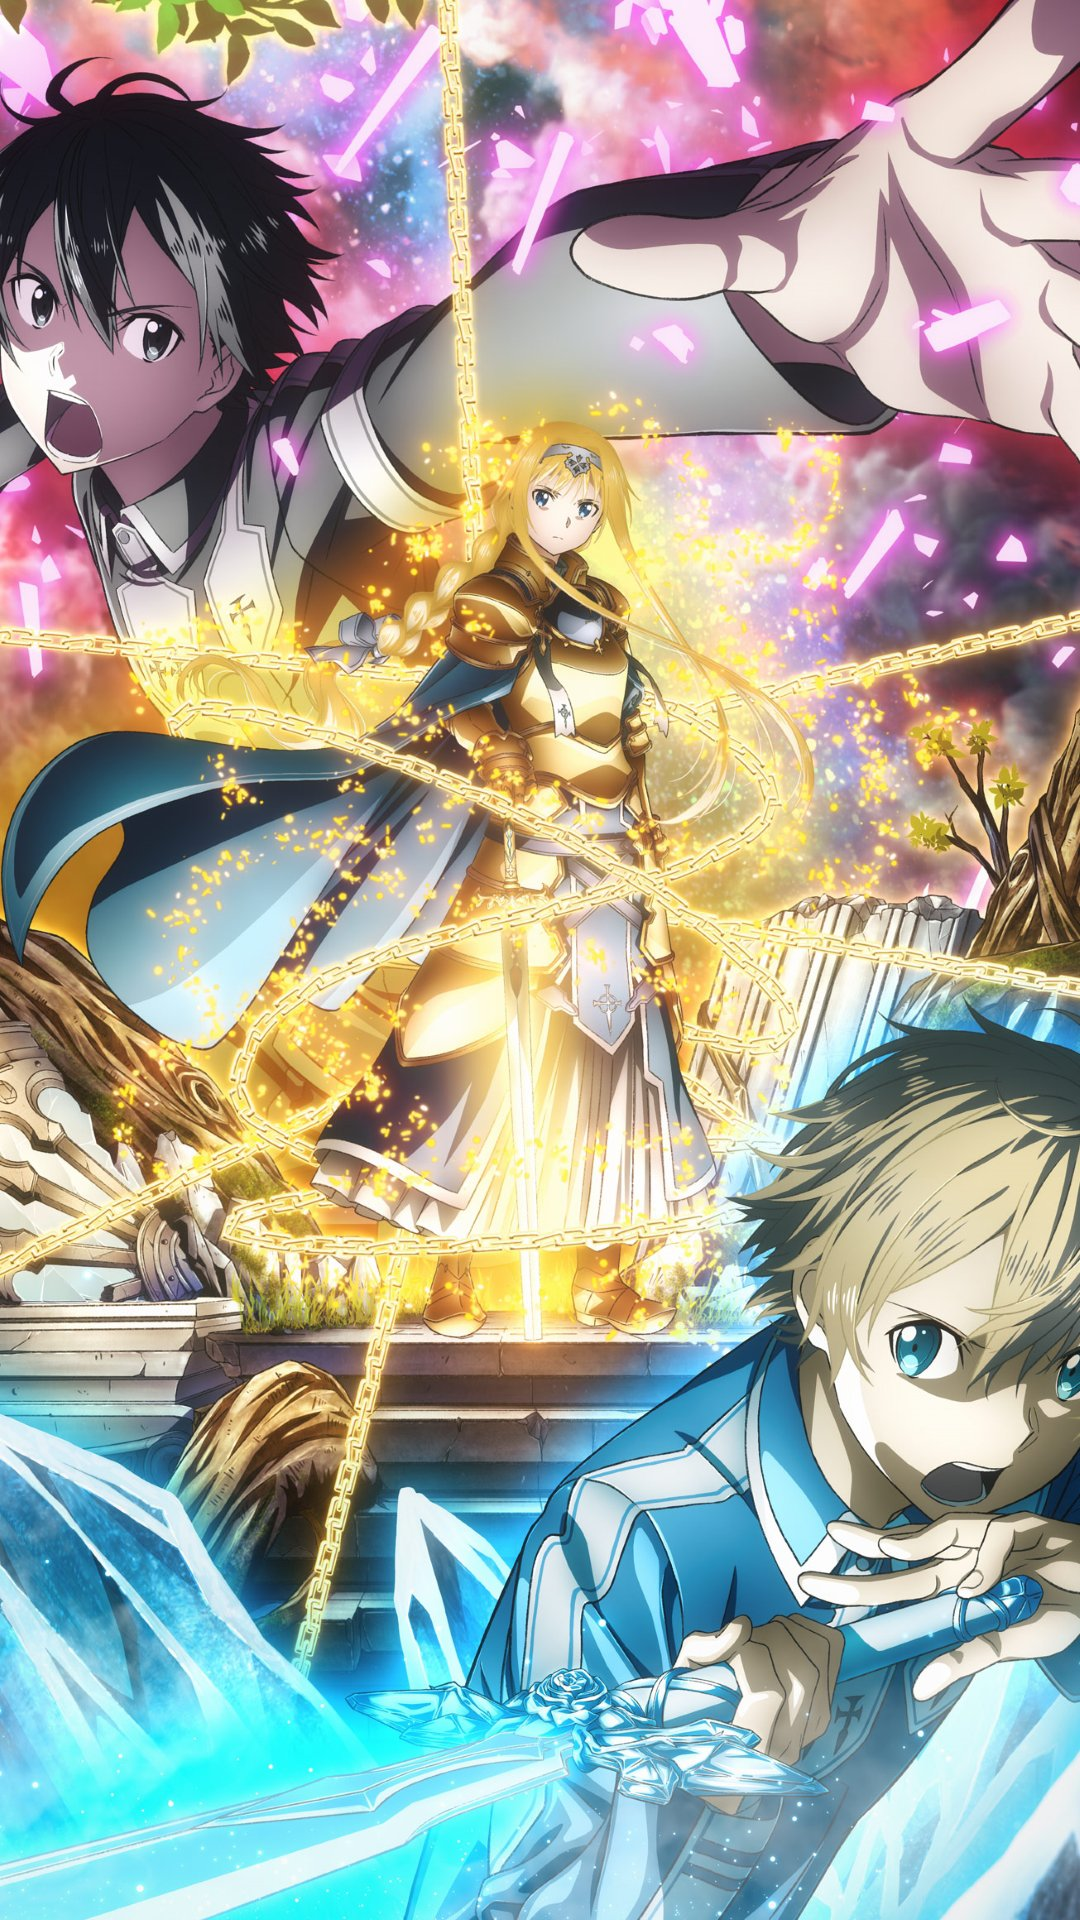 Sword Art Online Alicization Wallpapers For Iphone And Android Smartphones